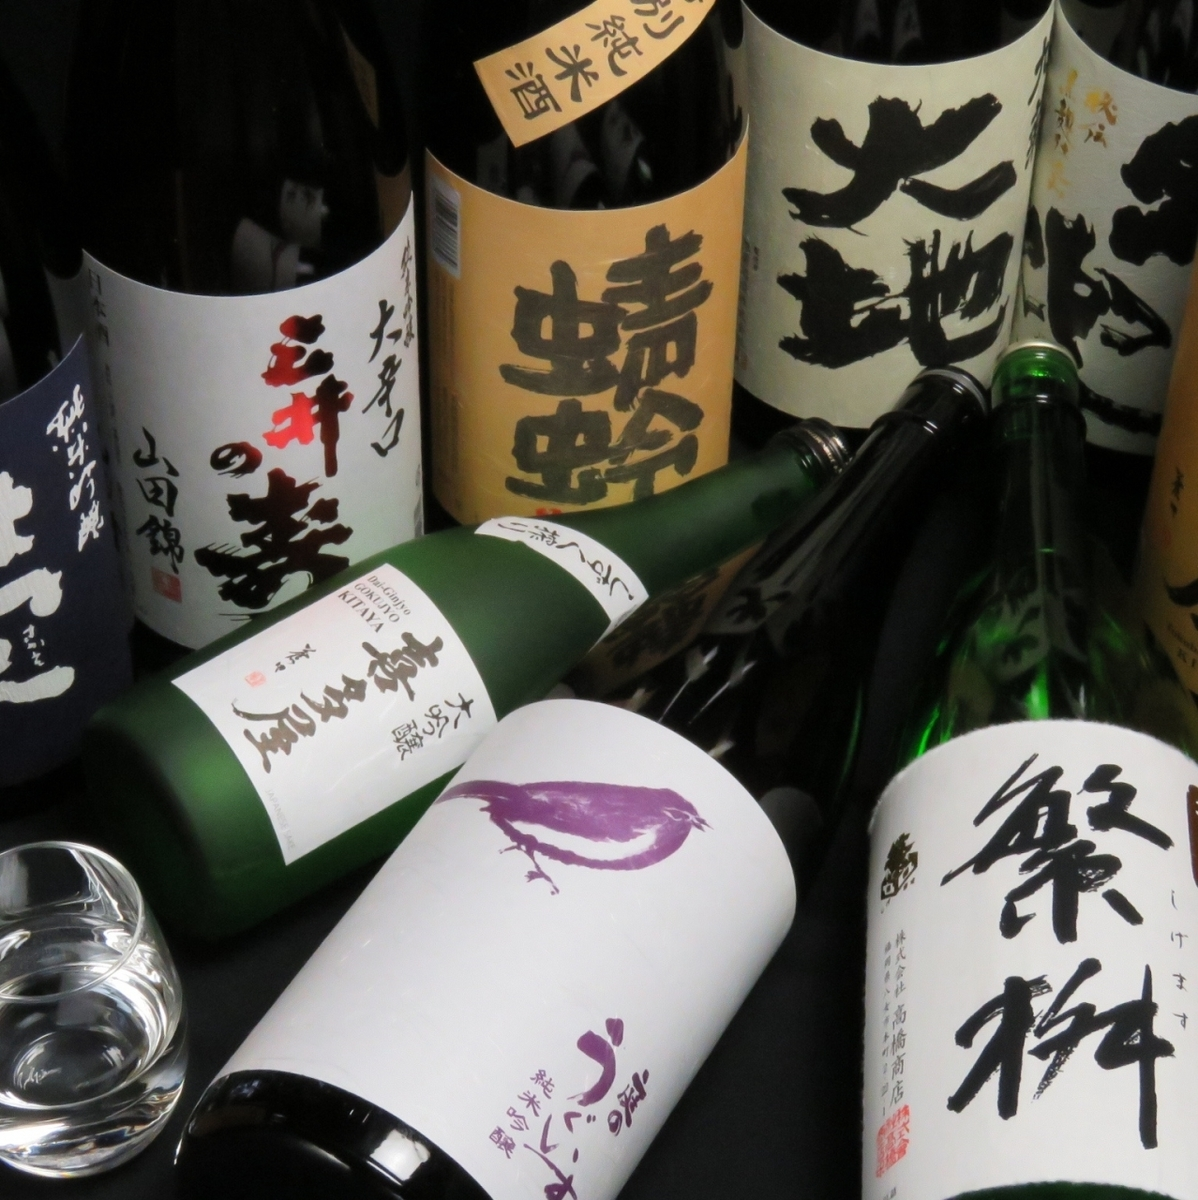 22 rich sake purchased from 22 stores!